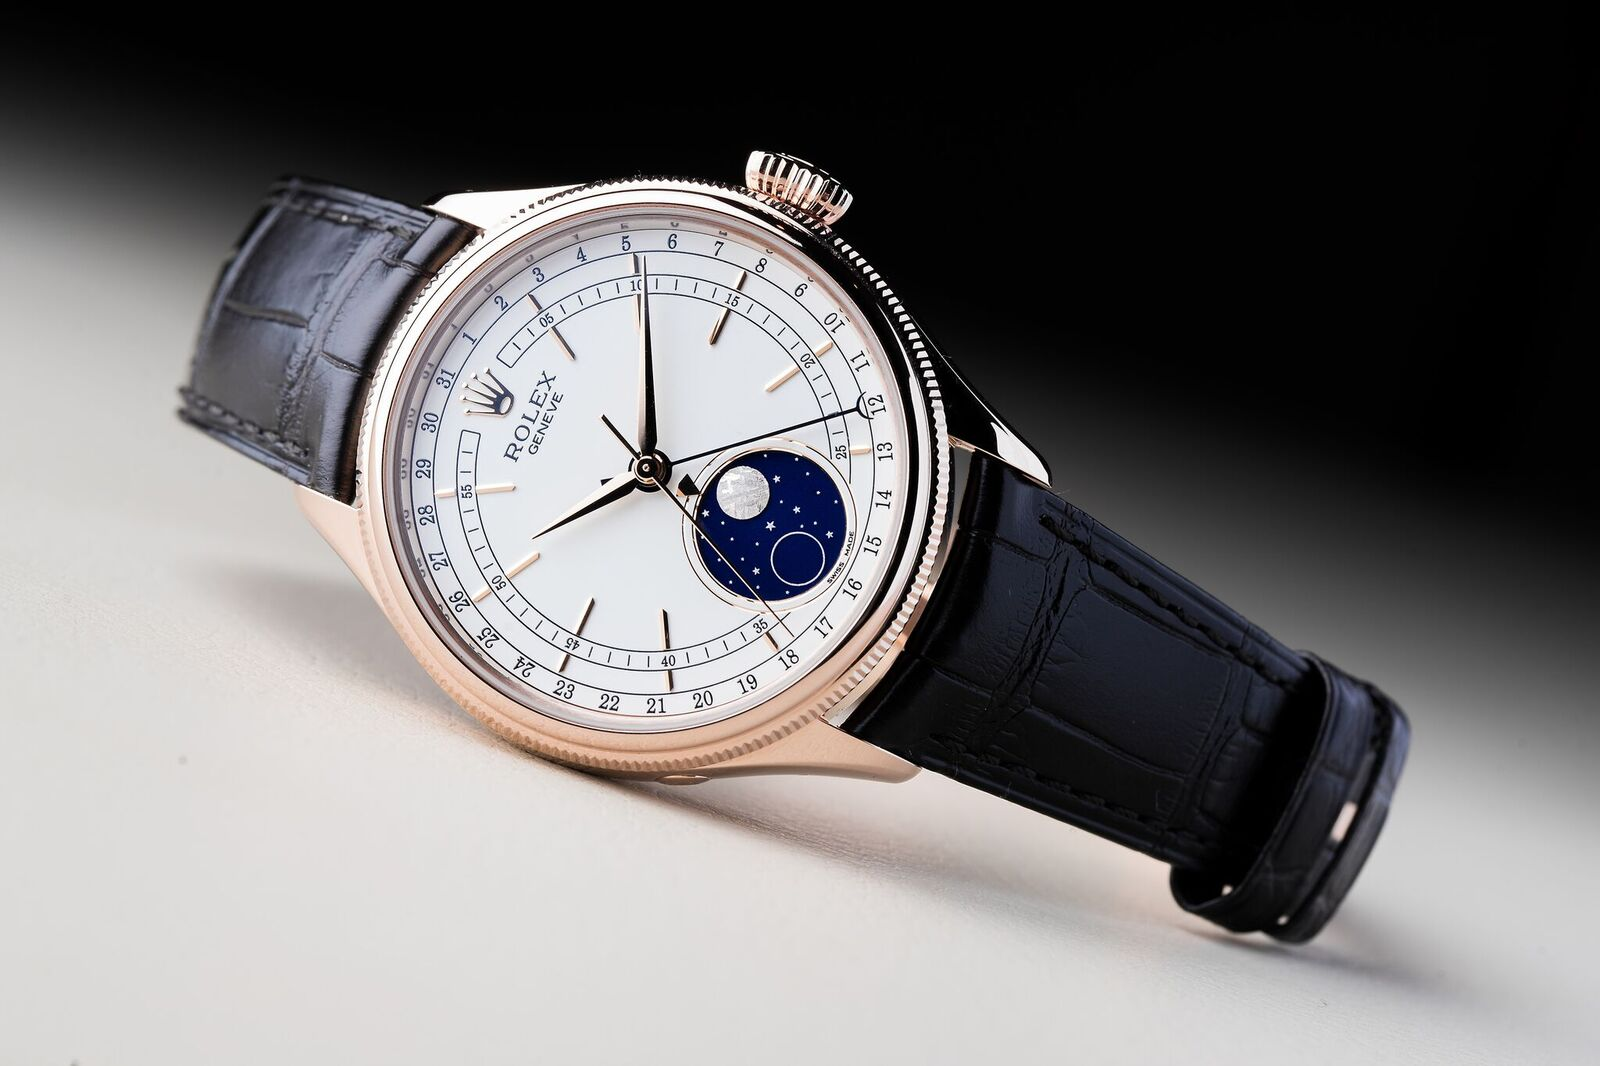 Rolex Cellini Moonphase which we precited last year